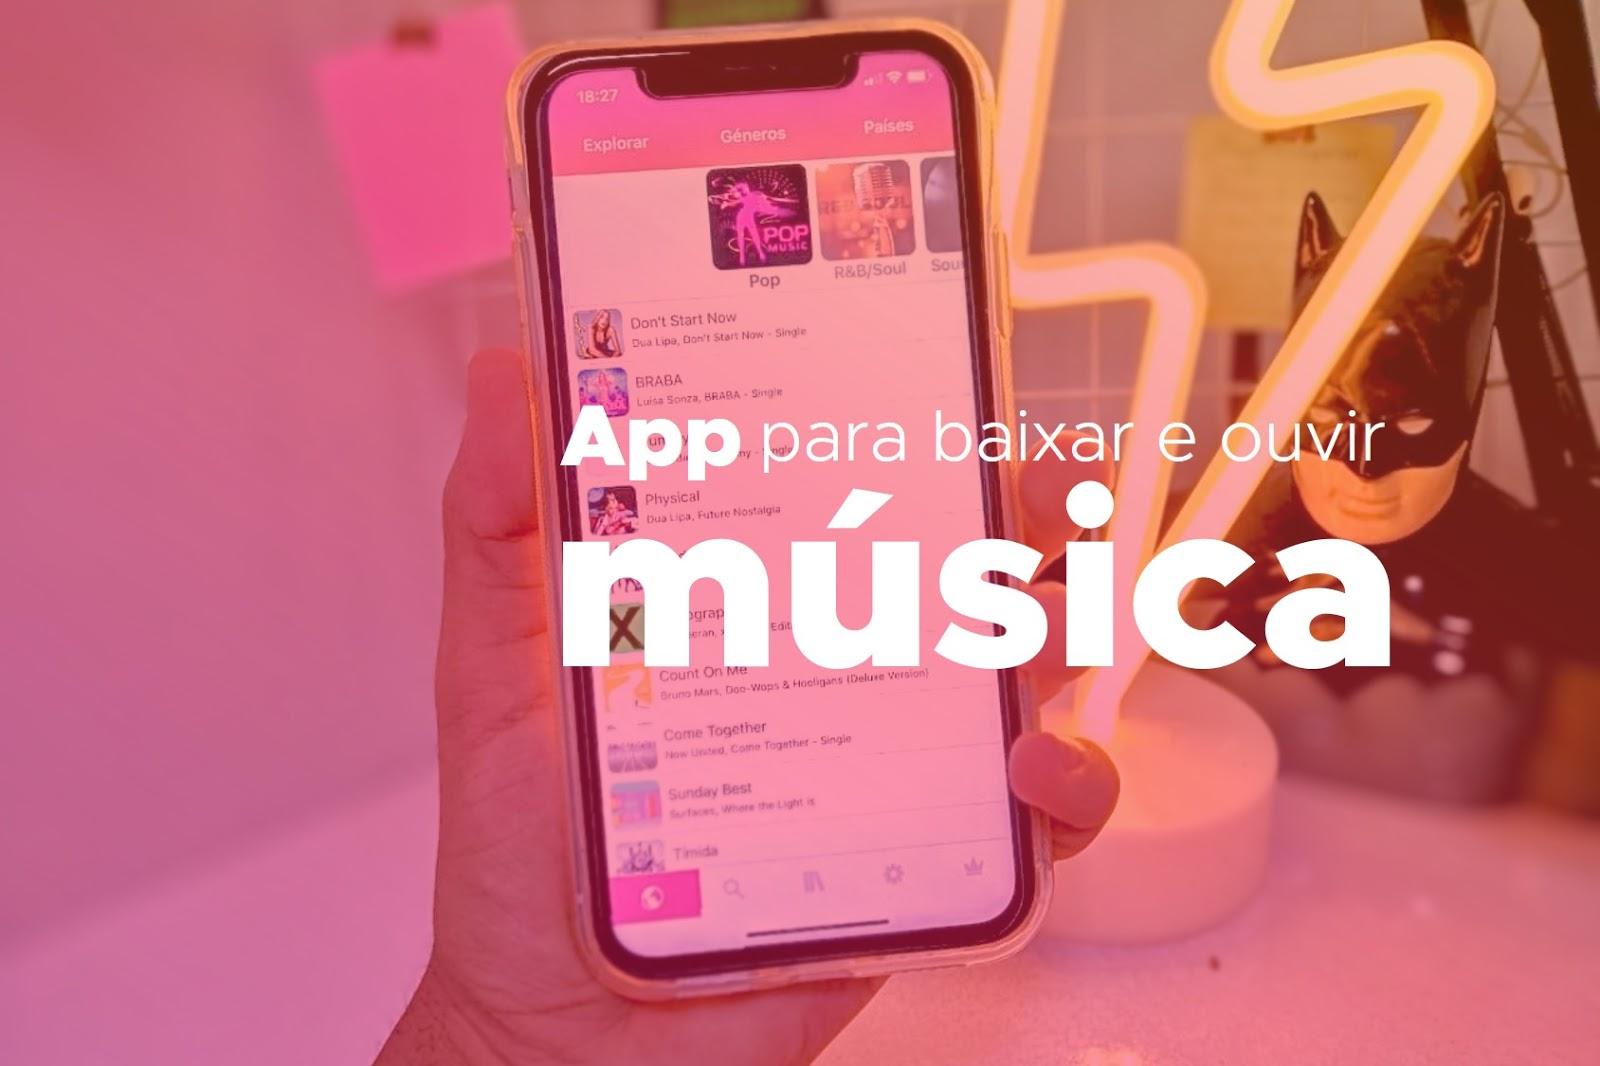 ouvir musica gratis no iphone